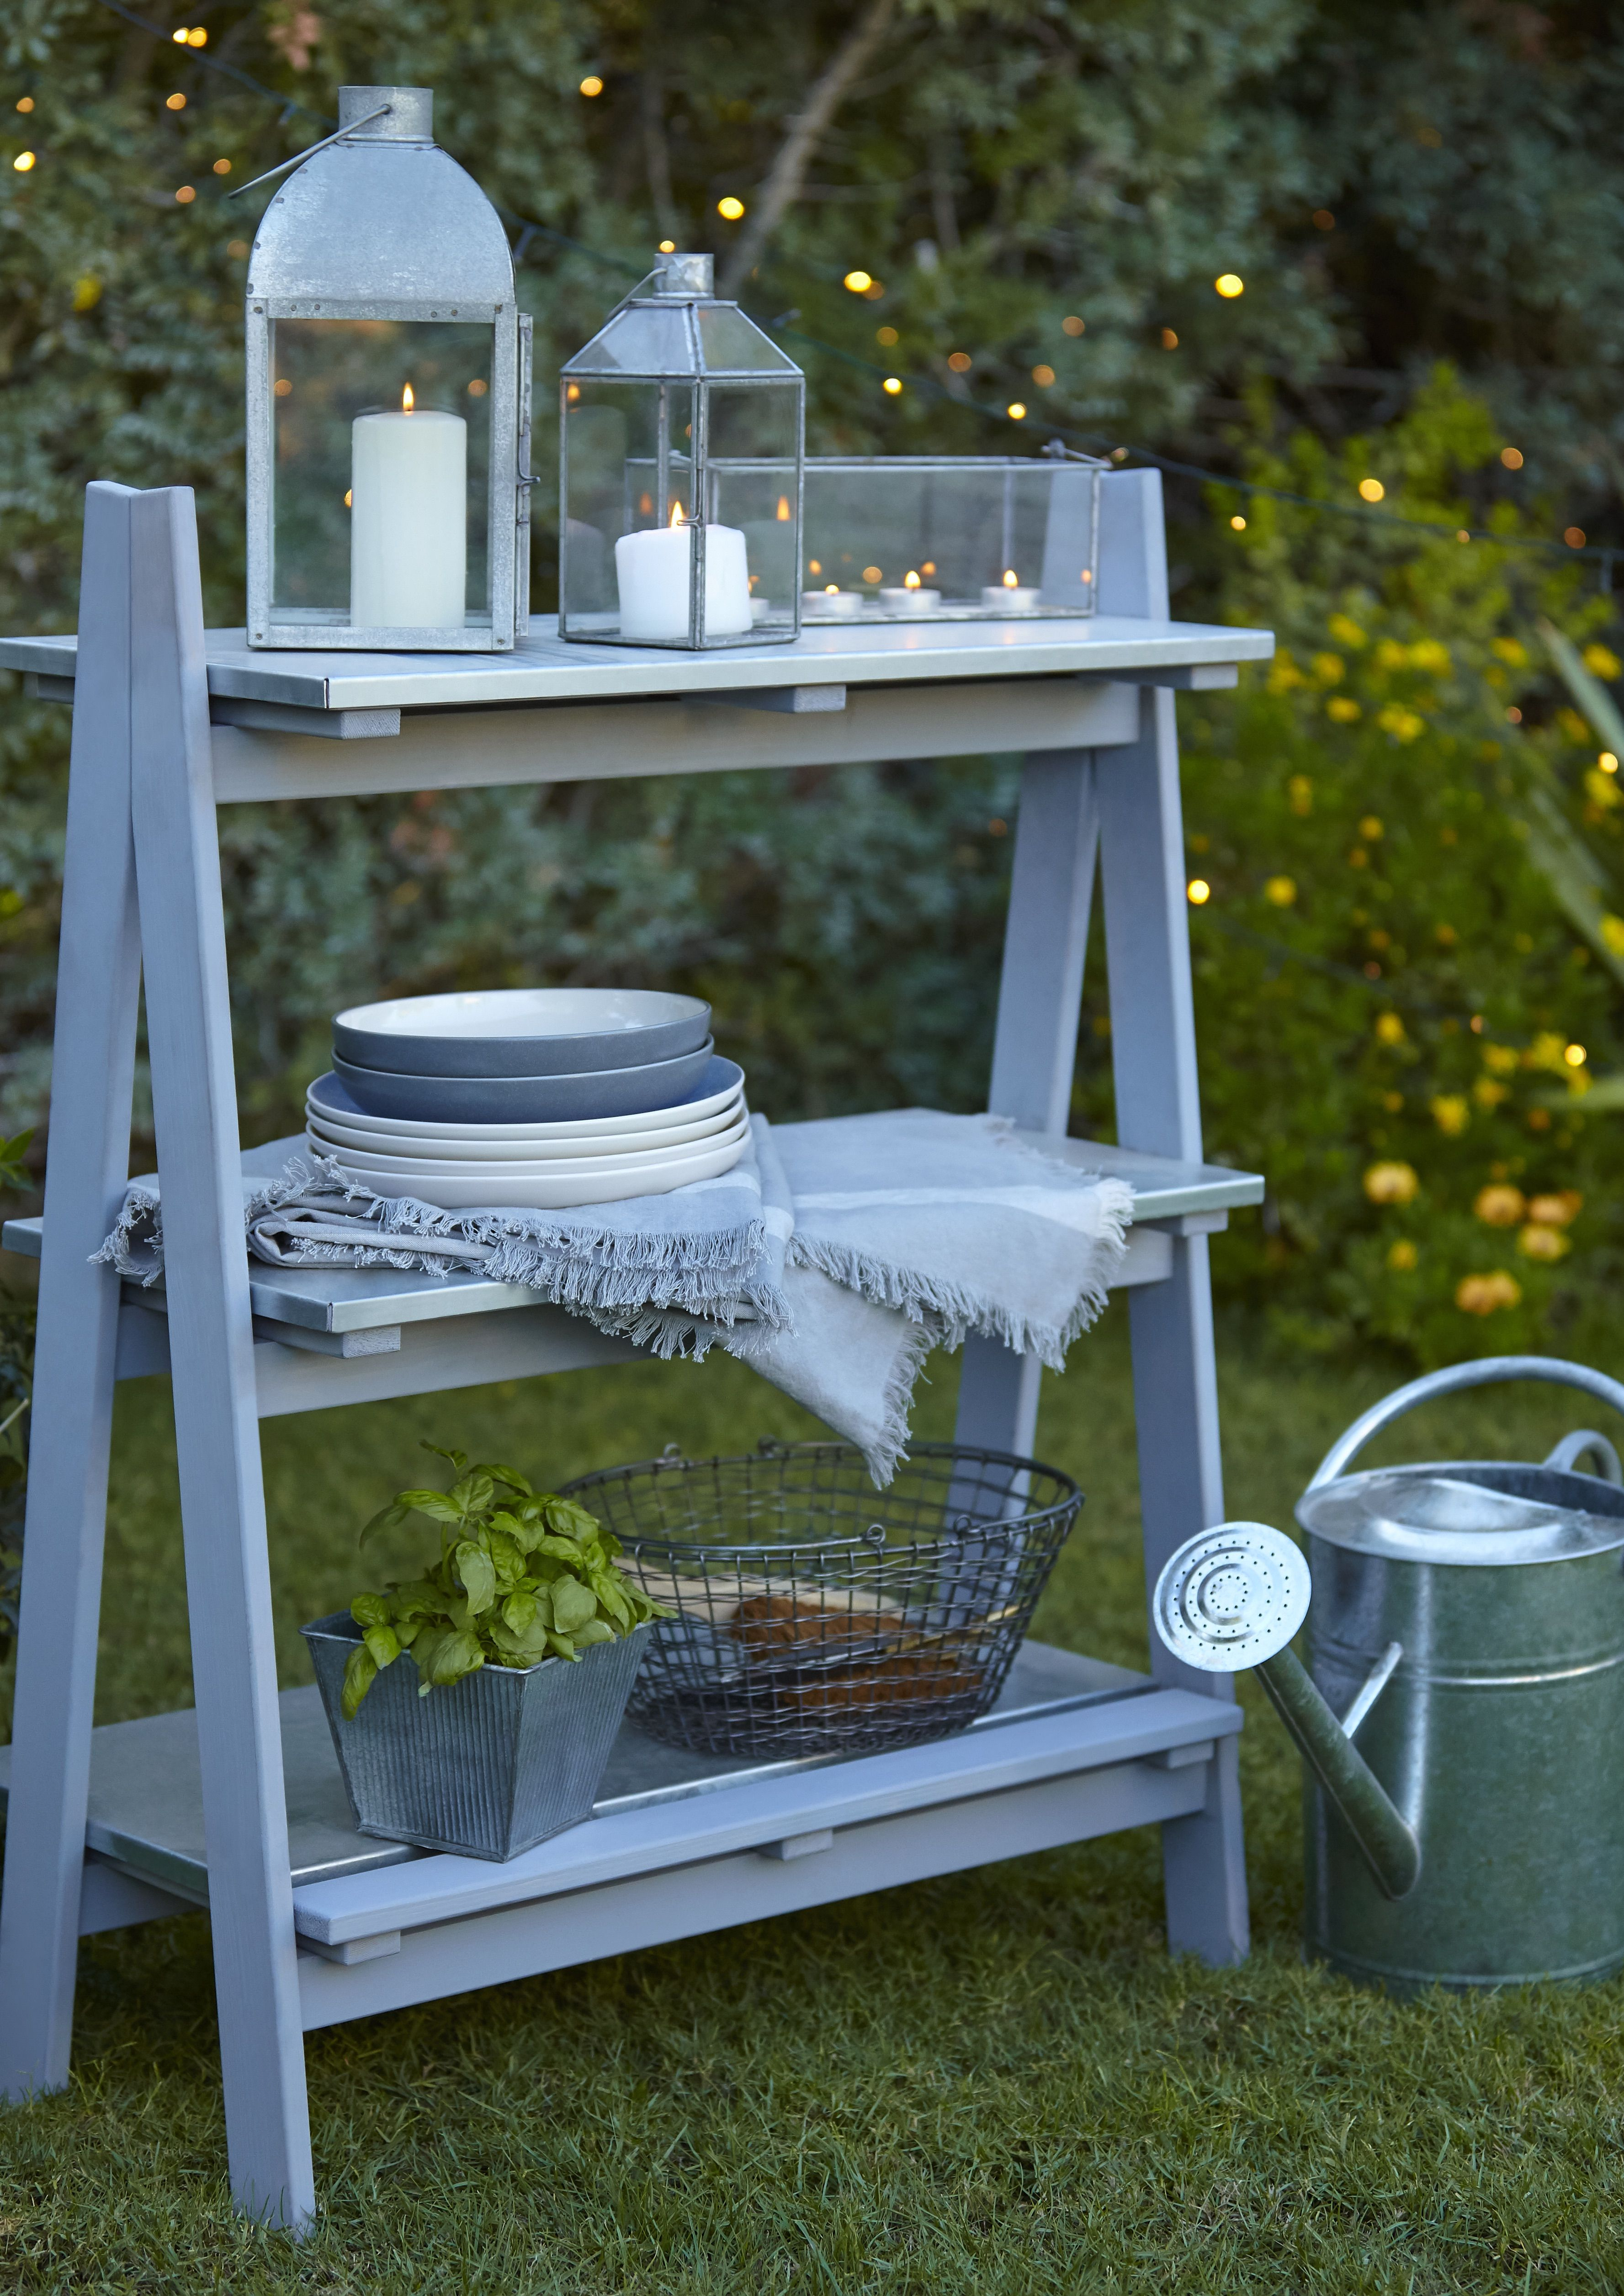 Stylish Shelving B Q S New Rural Outdoor Collection Comprises Of This 3 Shelf Shelving Unit Filled With Outdoor Wood Projects Garden Shelves Garden Furniture